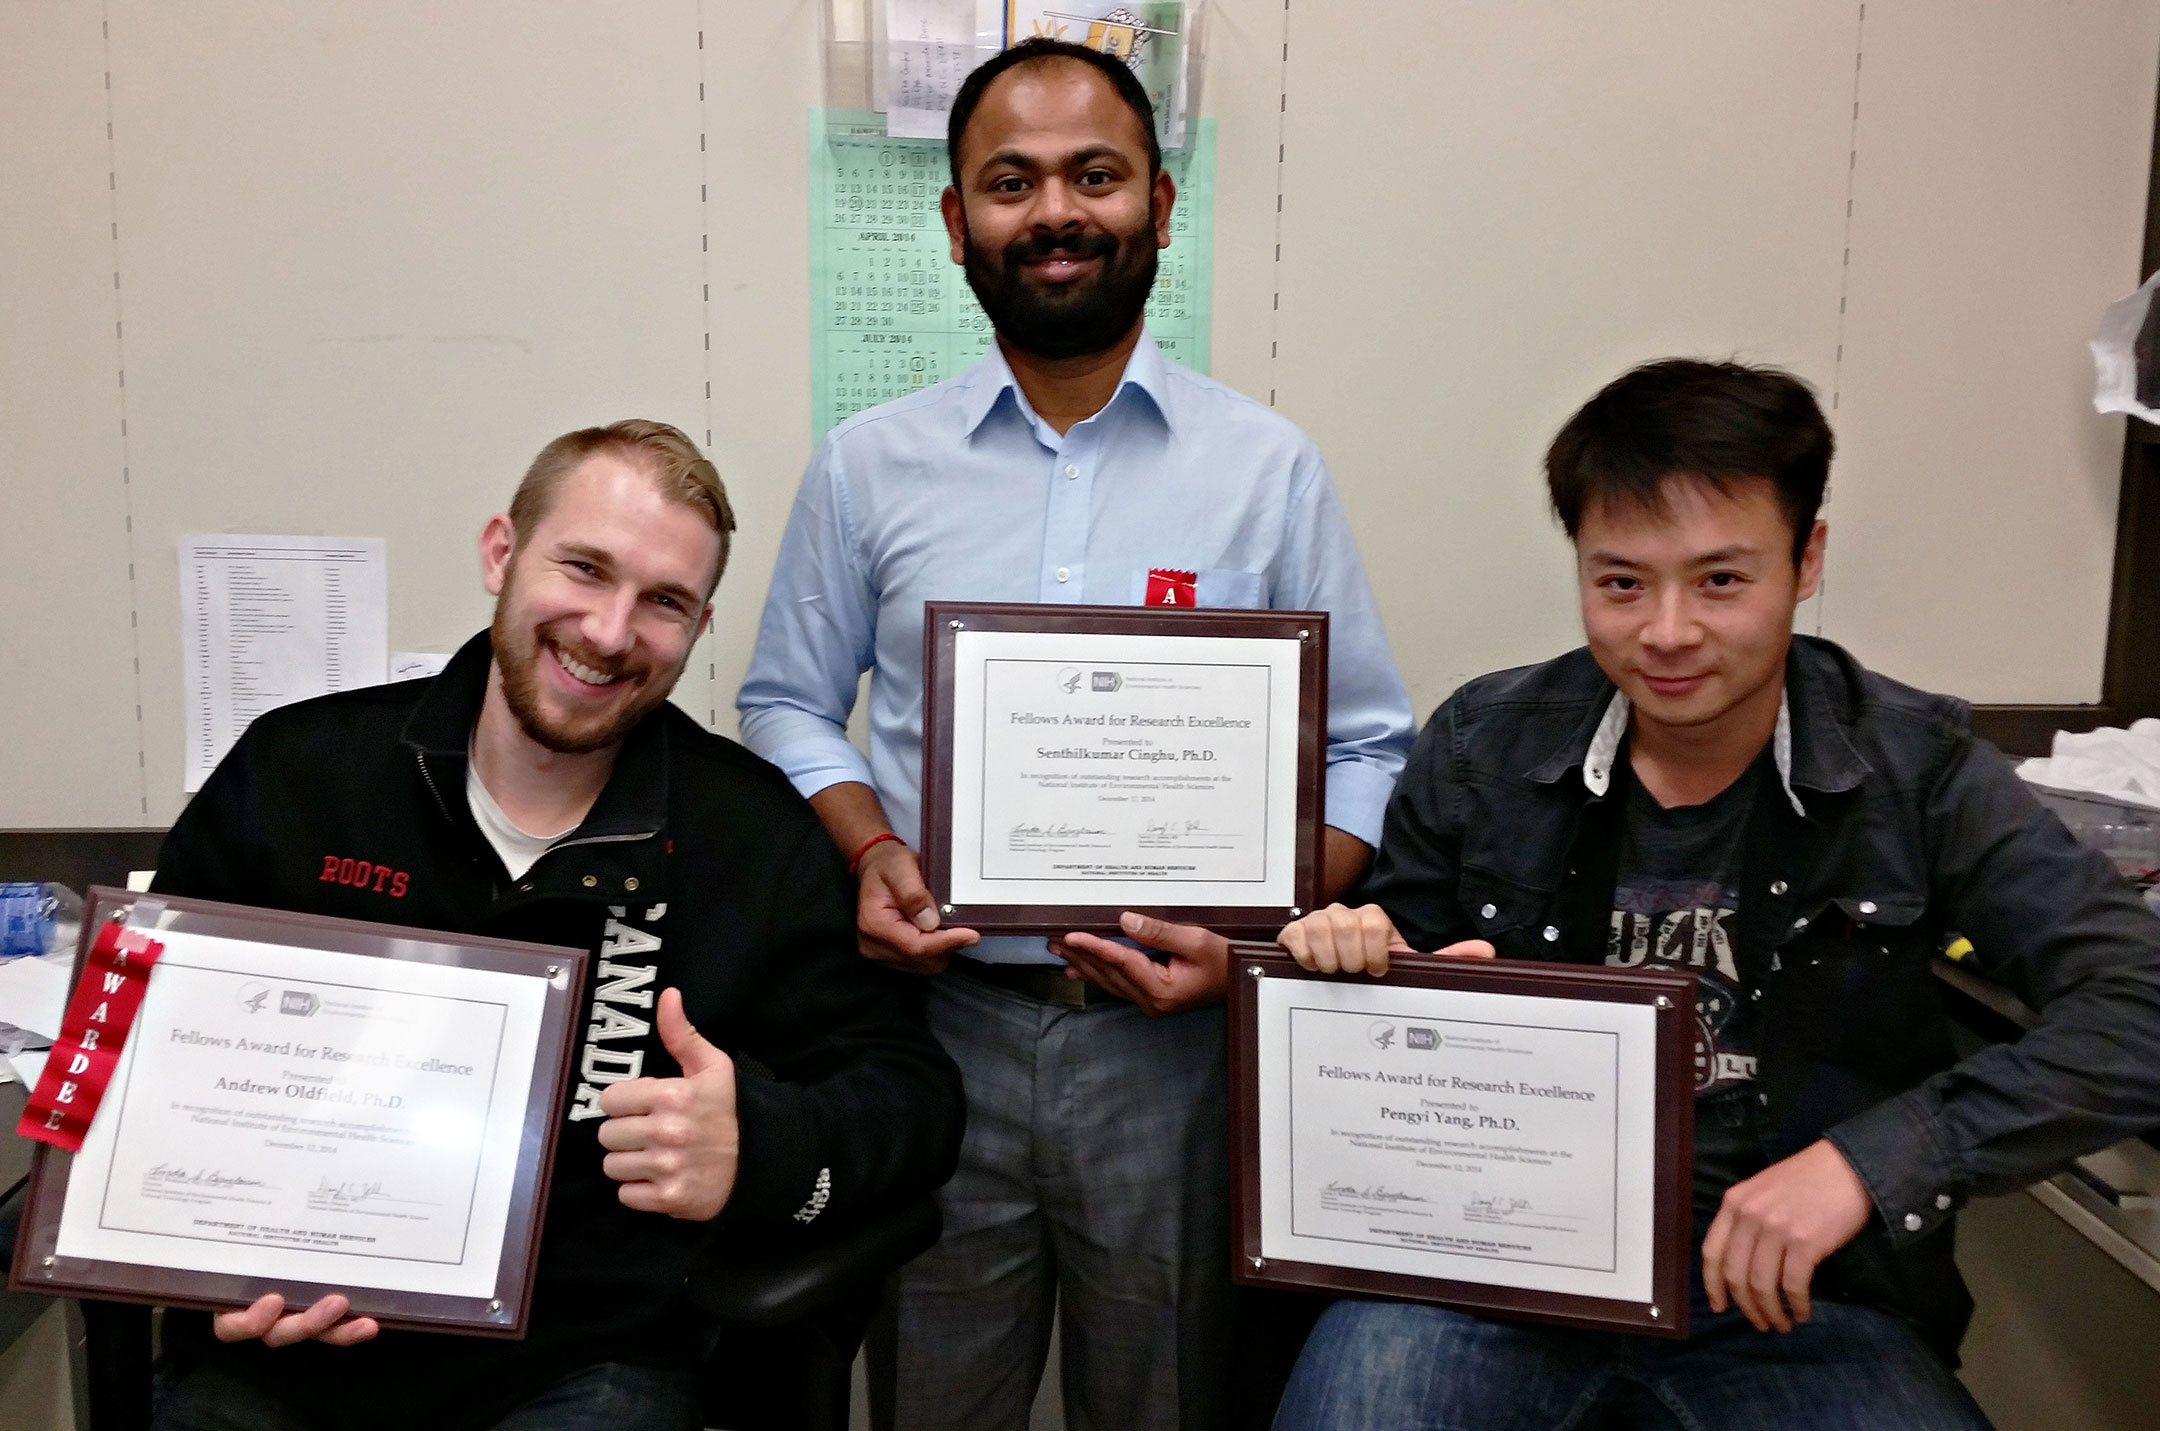 Andrew, Senthil, and Pengyi showing off with their NIH Fellows Award for Research Excellence. This is Senthil's second such award.